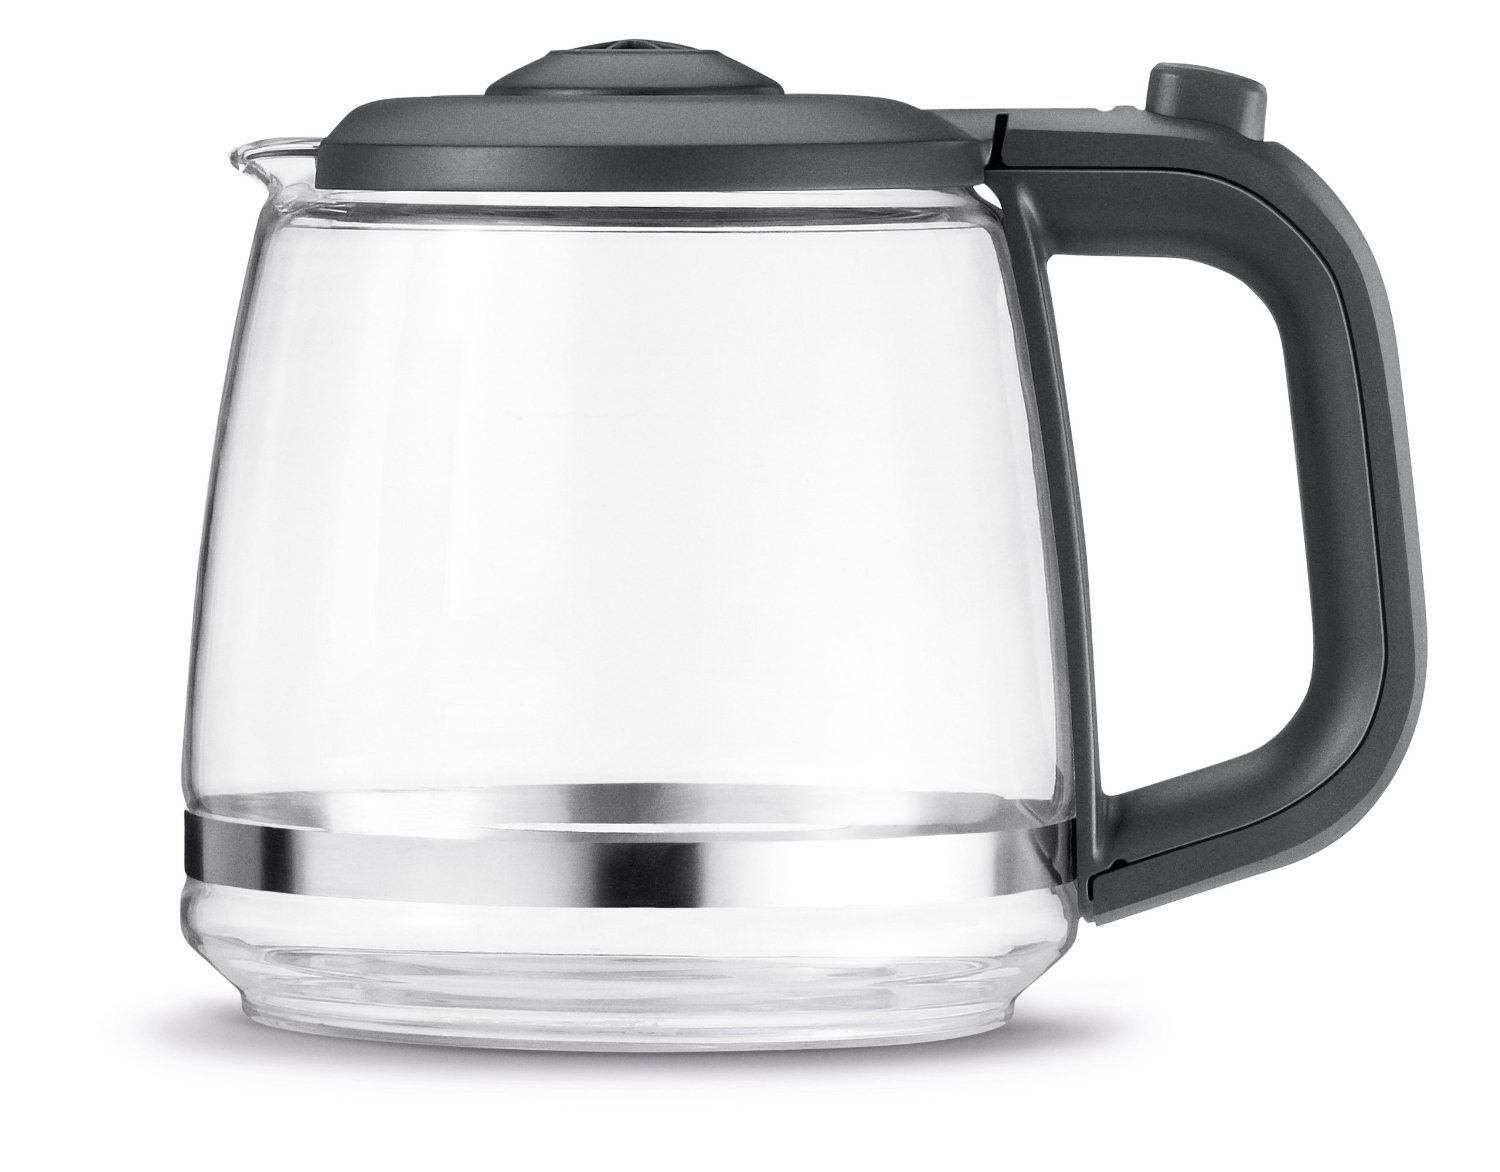 Breville BDC012GC 12-Cup Glass Carafe